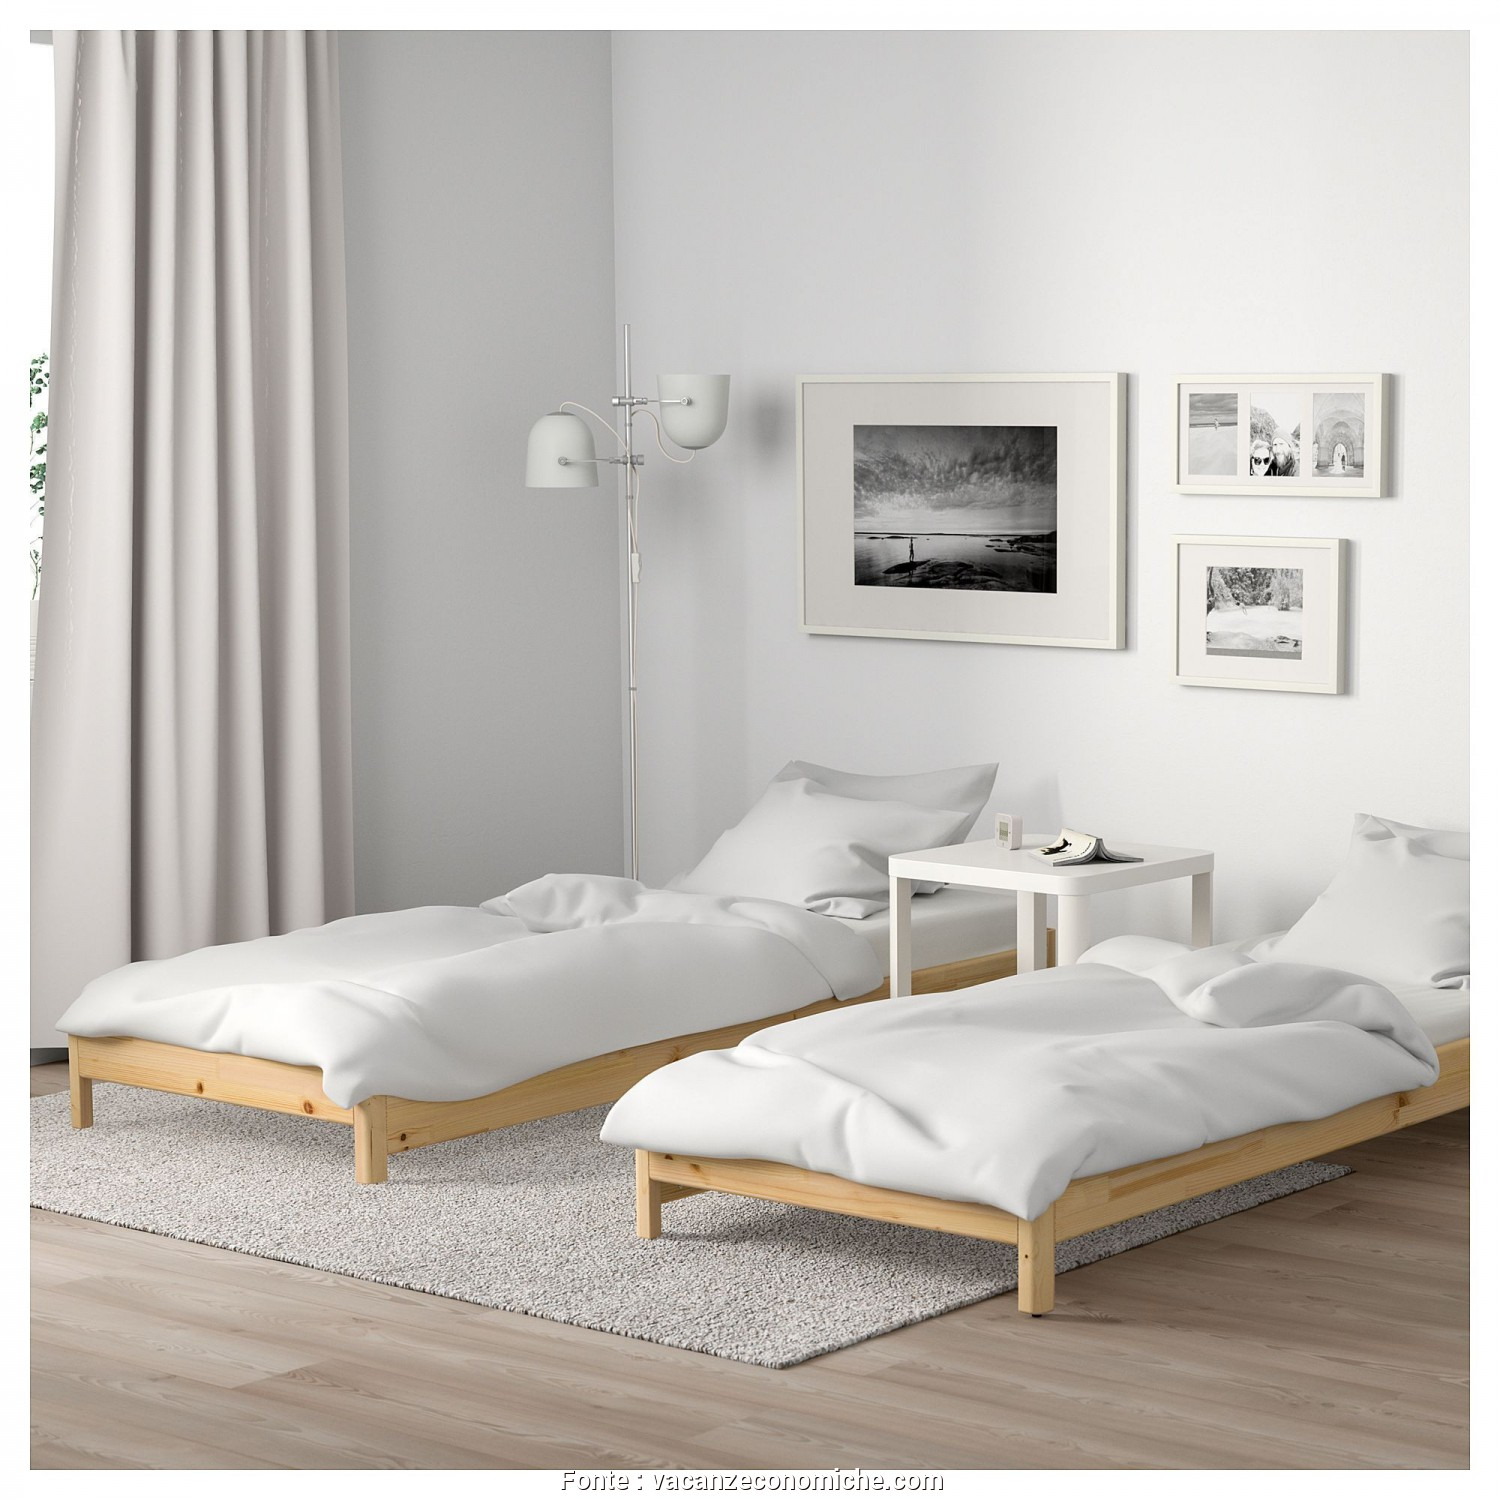 Grande 5 Ikea Hemnes Letto Matrimoniale Keever For Congress